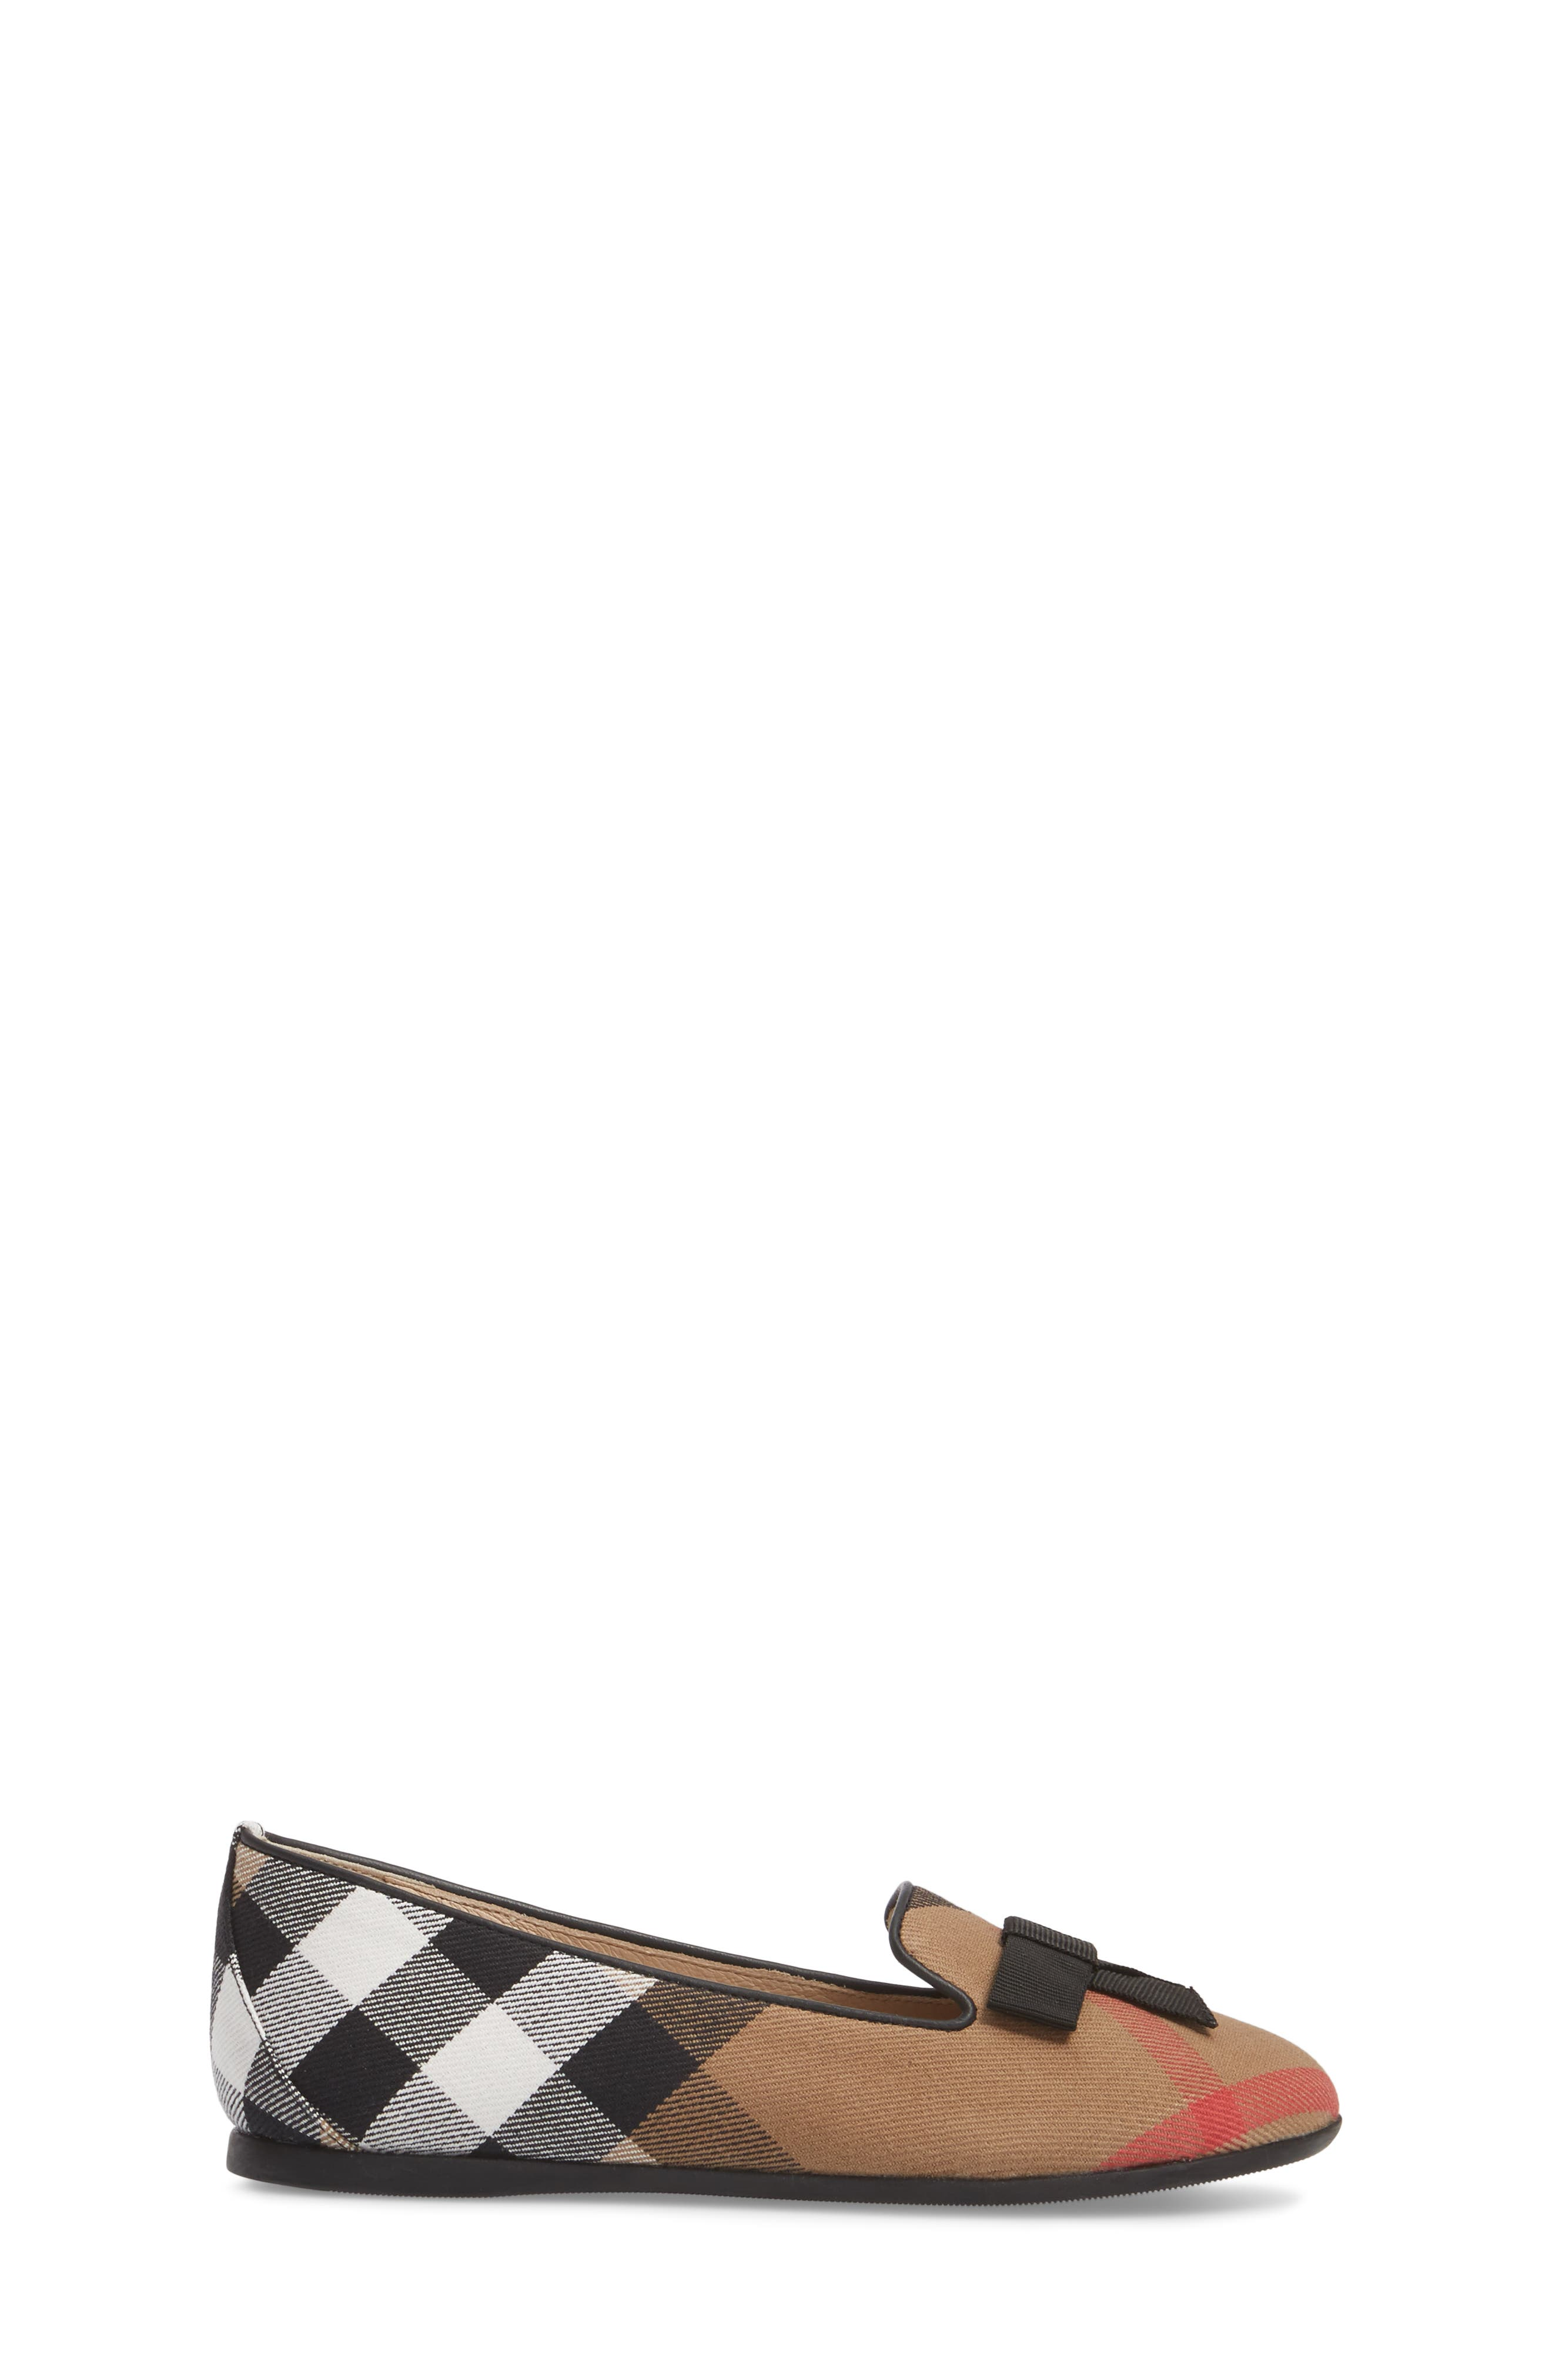 Ally Bow Loafer Flat,                             Alternate thumbnail 3, color,                             231